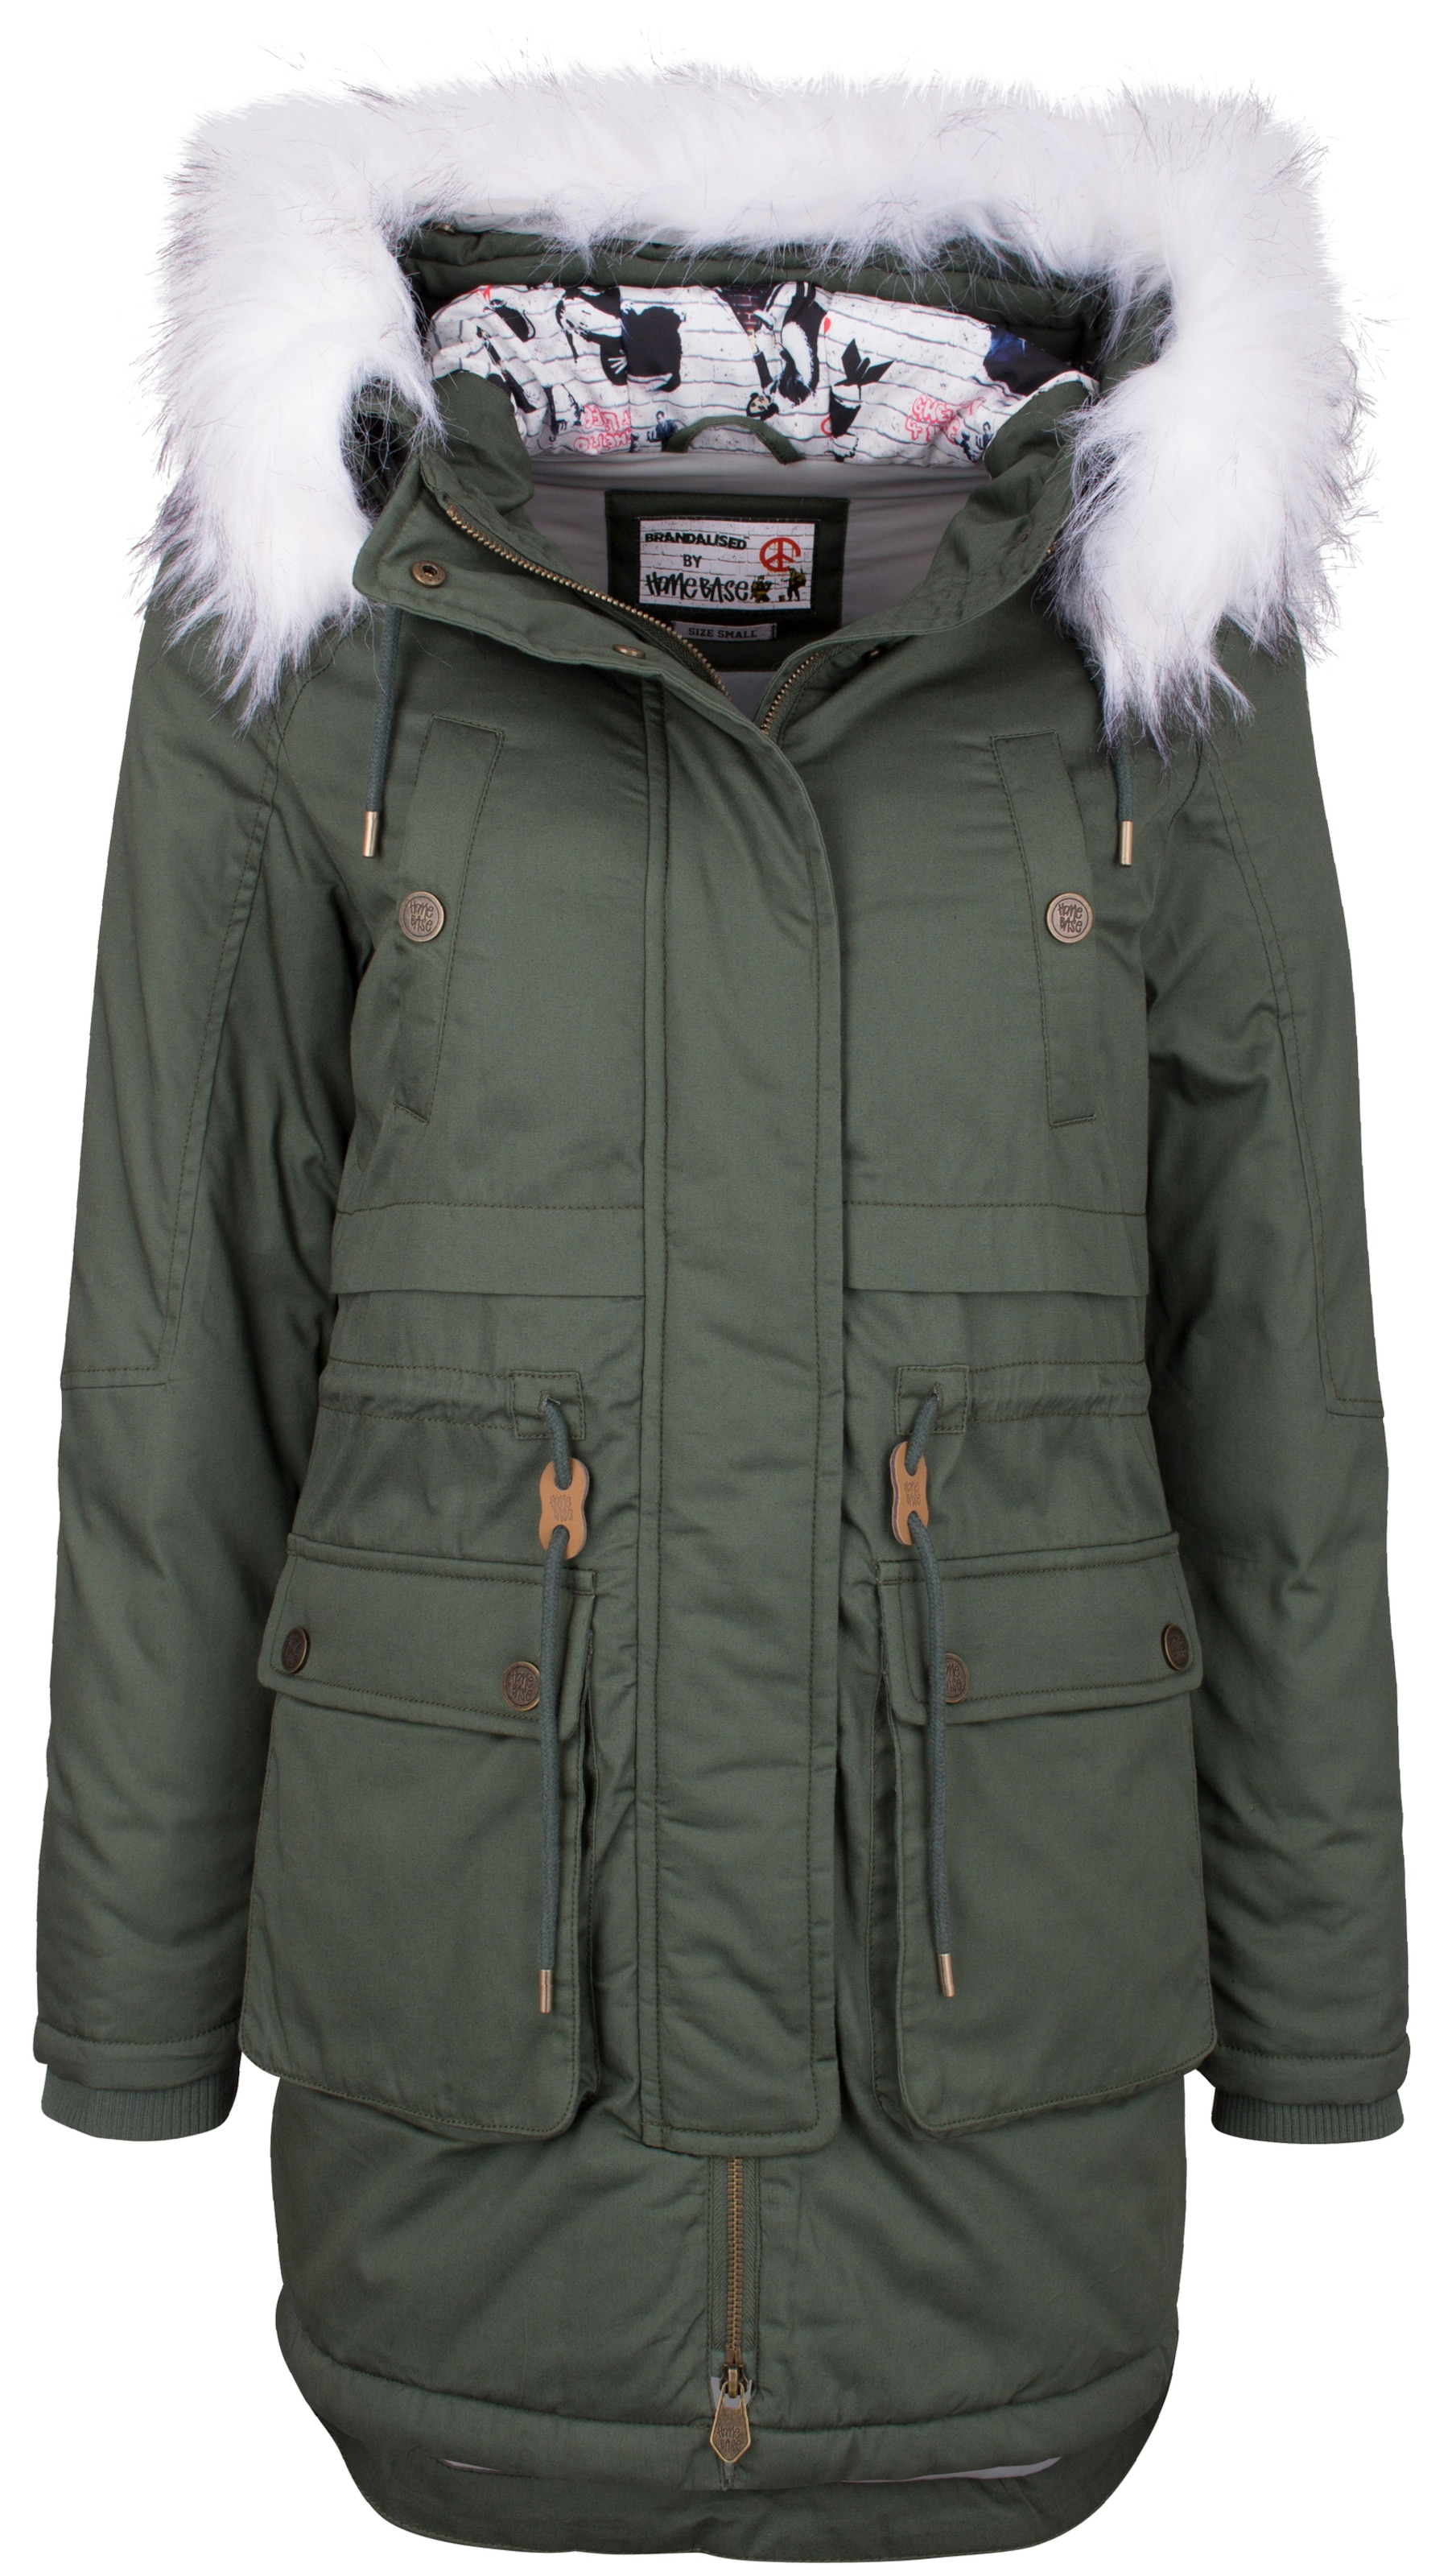 HOMEBASE HOMEBASE 'Brandalised 'Brandalised Homebase' Homebase' Homebase' 'Brandalised Parka Parka HOMEBASE by by by 6Ara6BxSn